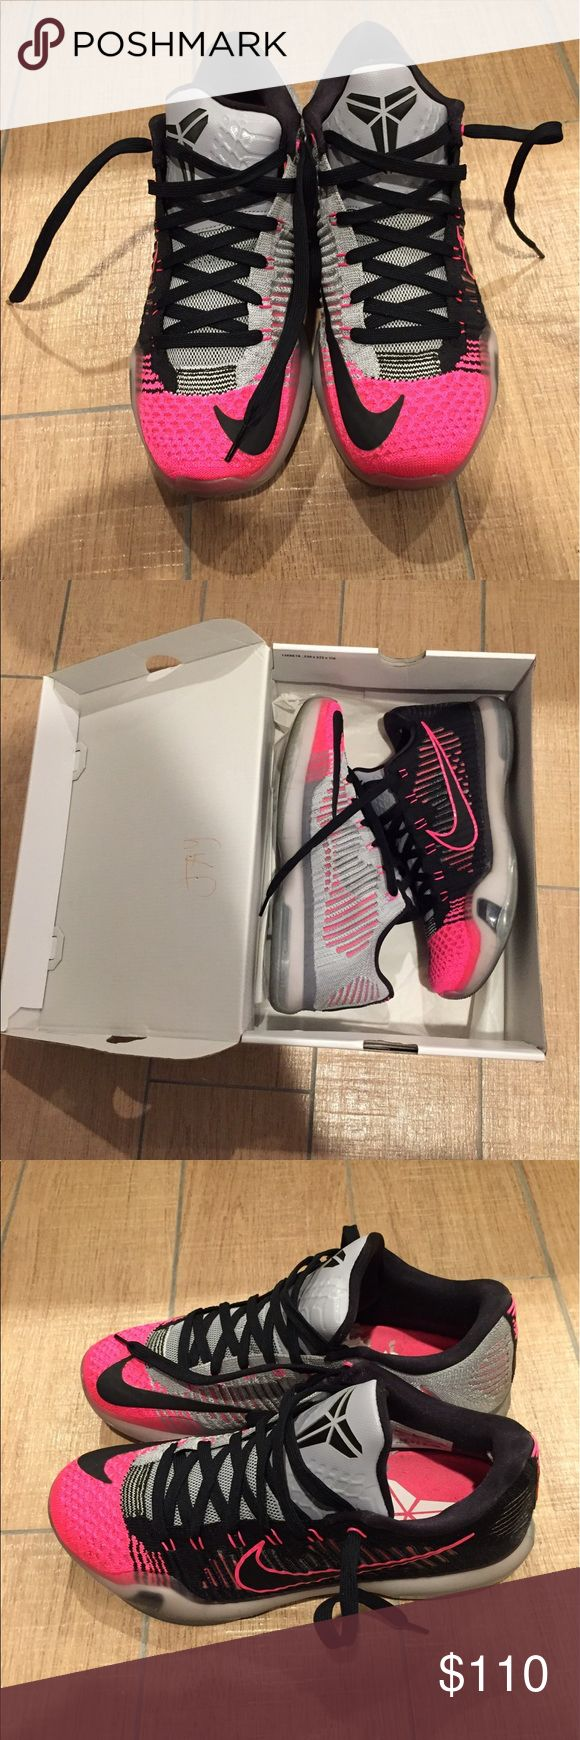 Nike Kobe Sneakers - Men's 8.5 Nike Kobe X Mambacurial sneakers with box. Men's 8.5 Nike Shoes Sneakers